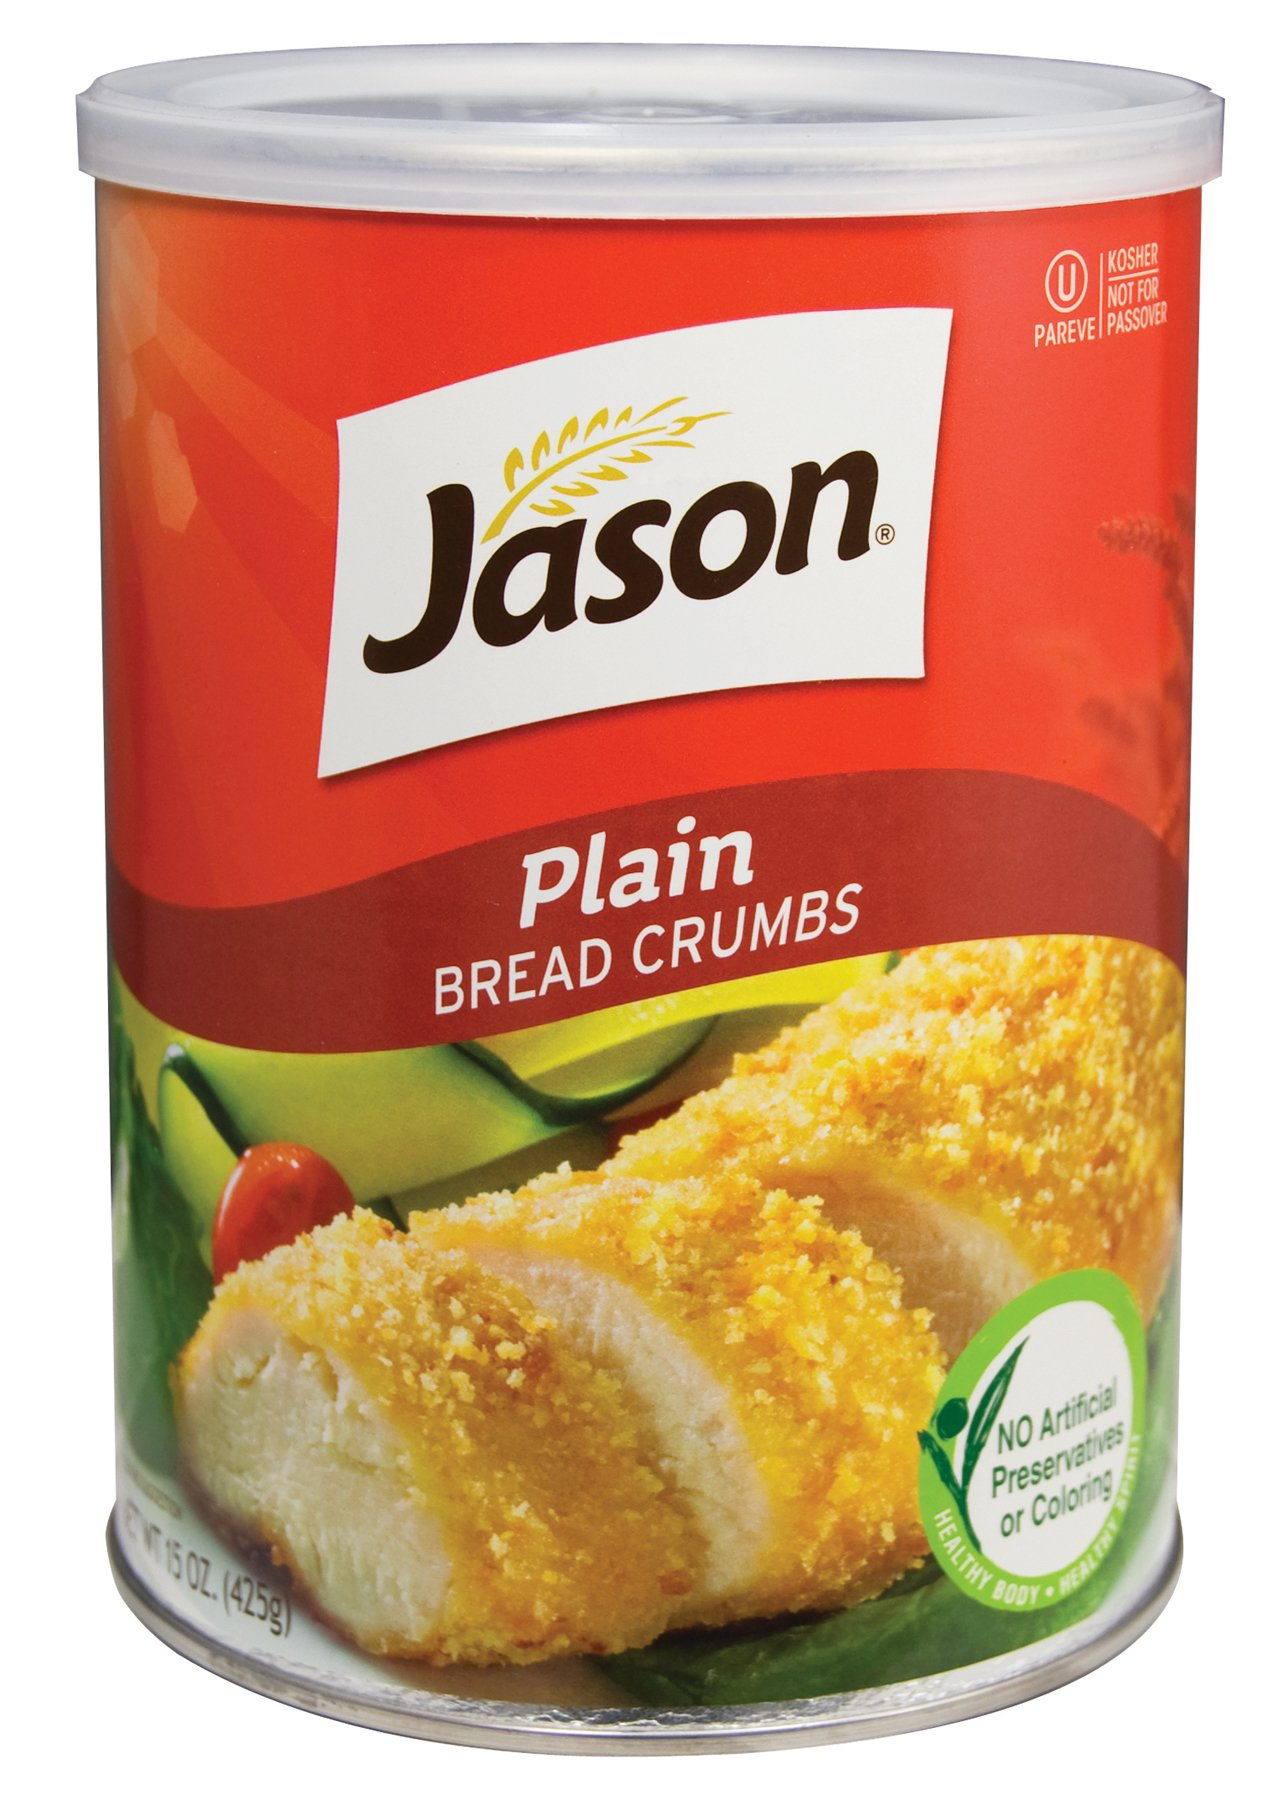 Jason Bread Crumbs Bread Crumbs Plain, 15-Ounce (Pack of 6) by Jason Bread Crumbs